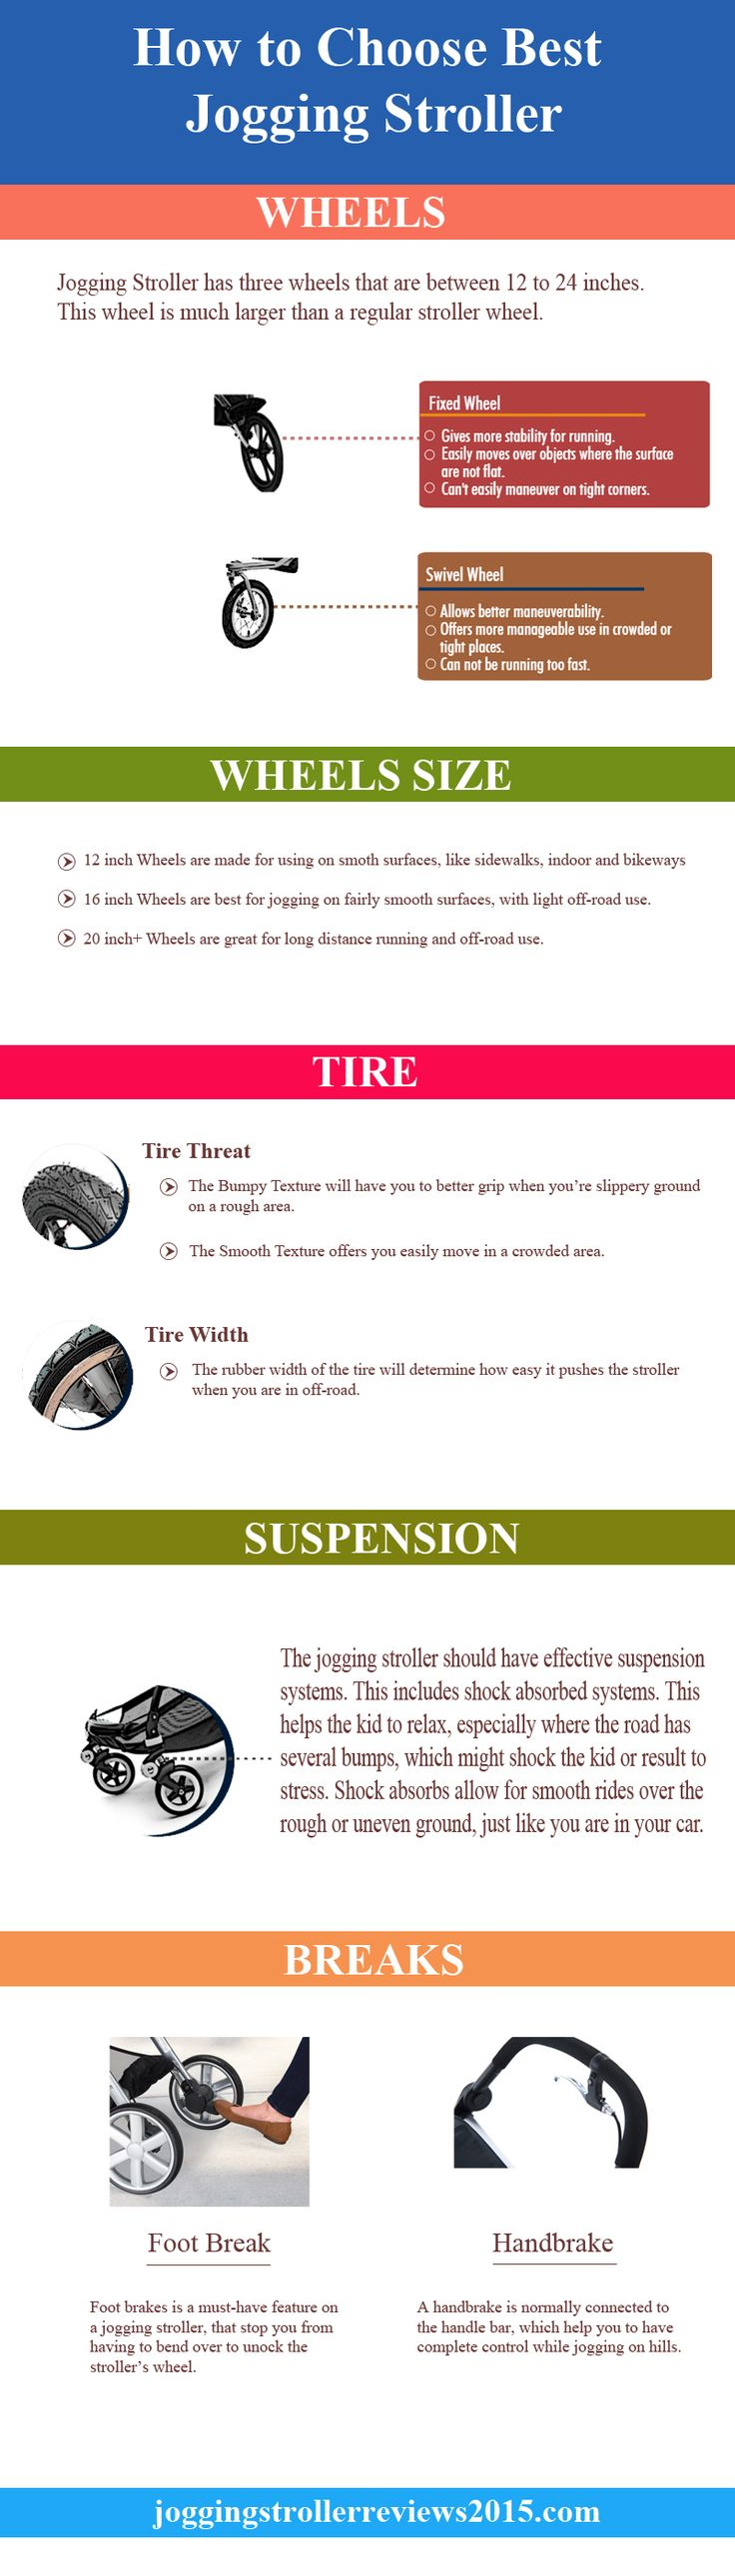 Infographic: How to Choose Best Jogging Stroller See how you can easily get a good stroller for your child @ www.bestbabystrollerhq.com Find out how you can actually get a good stroller for your little one @ www.bestbabystrollerhq.com